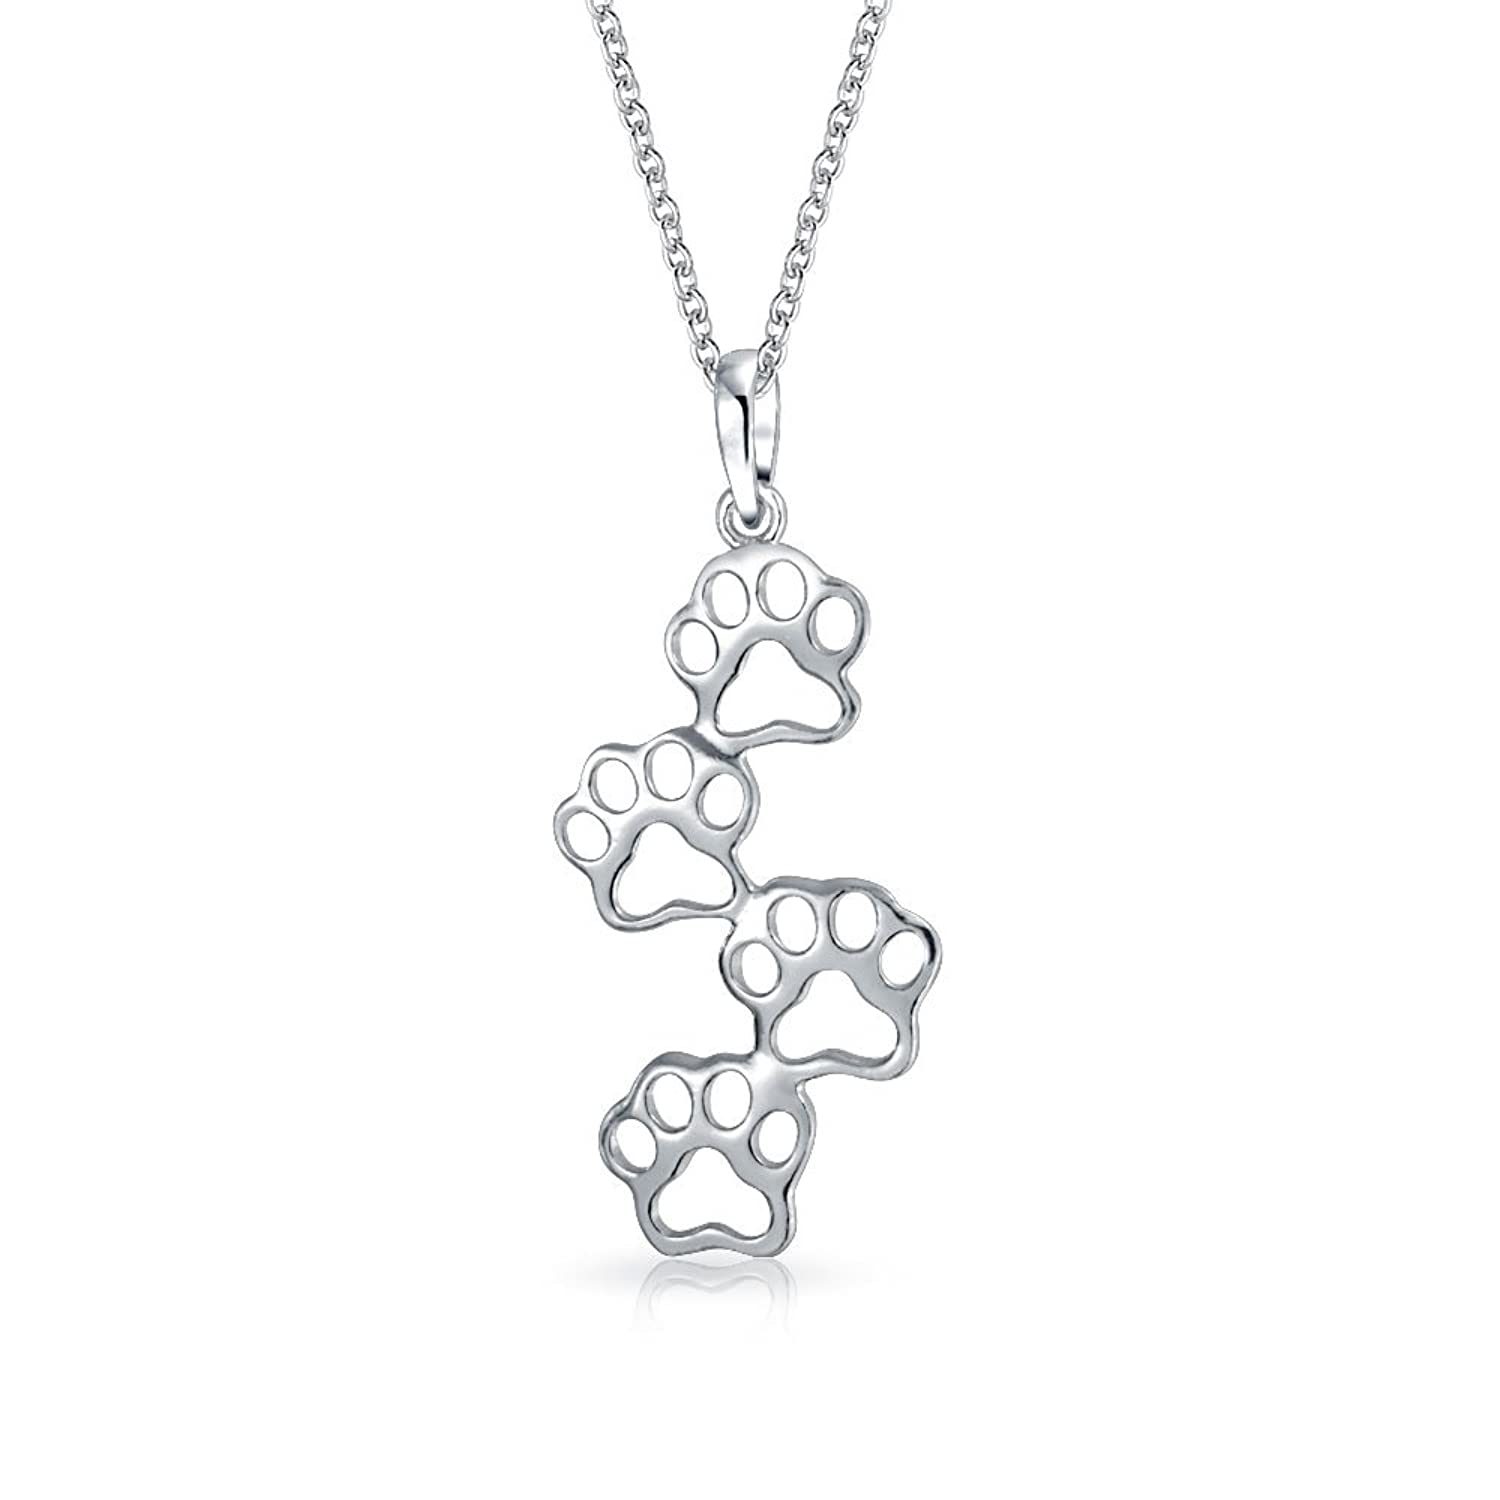 Bling jewelry animal paw print pendant sterling silver necklace 18 bling jewelry animal paw print pendant sterling silver necklace 18 inches amazon jewellery mozeypictures Gallery